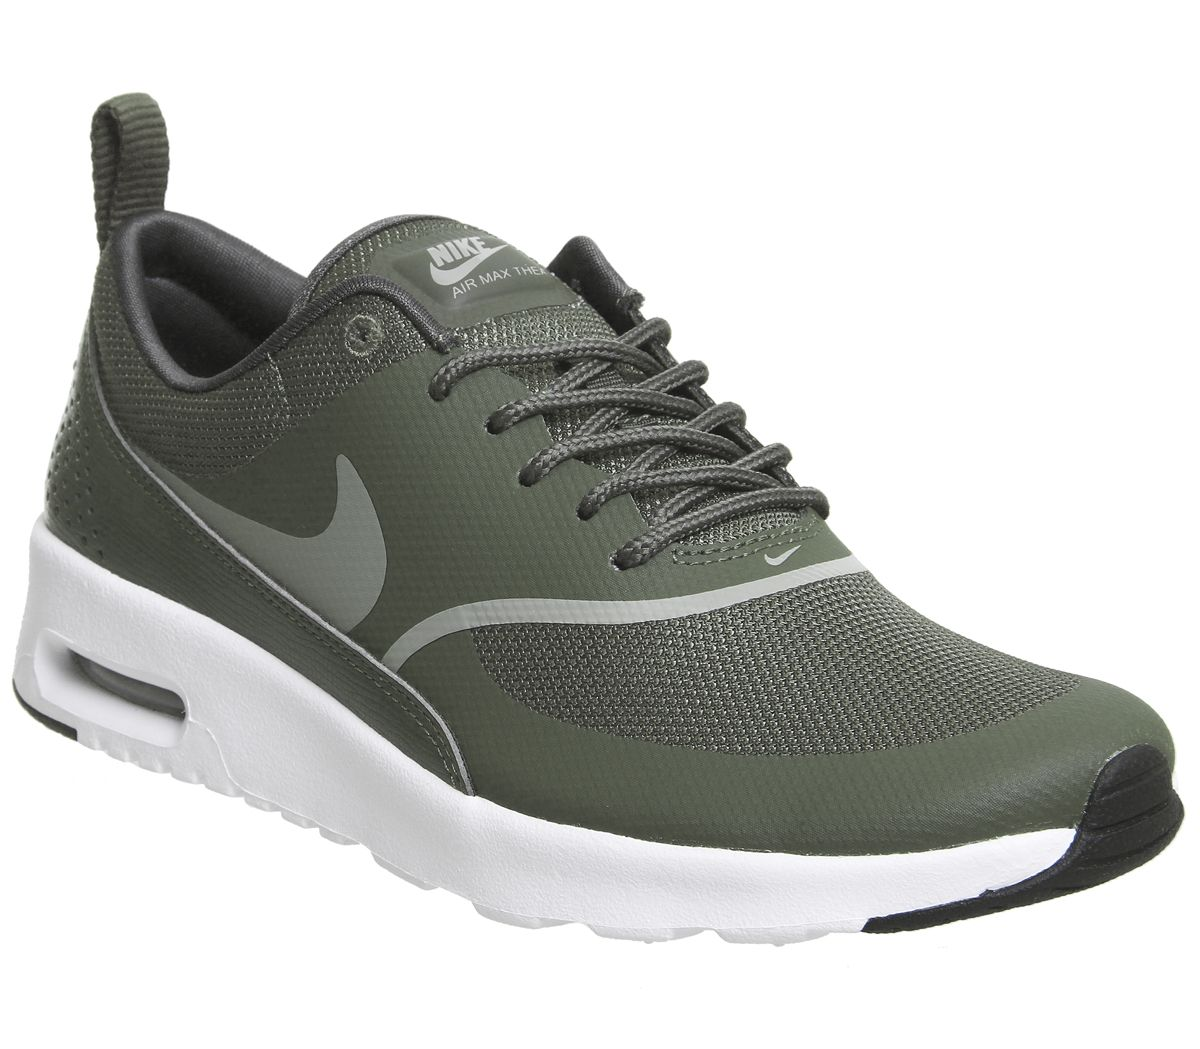 online retailer ba256 bb19a Nike Air Max Thea Trainers Cargo Khaki White - Hers trainers